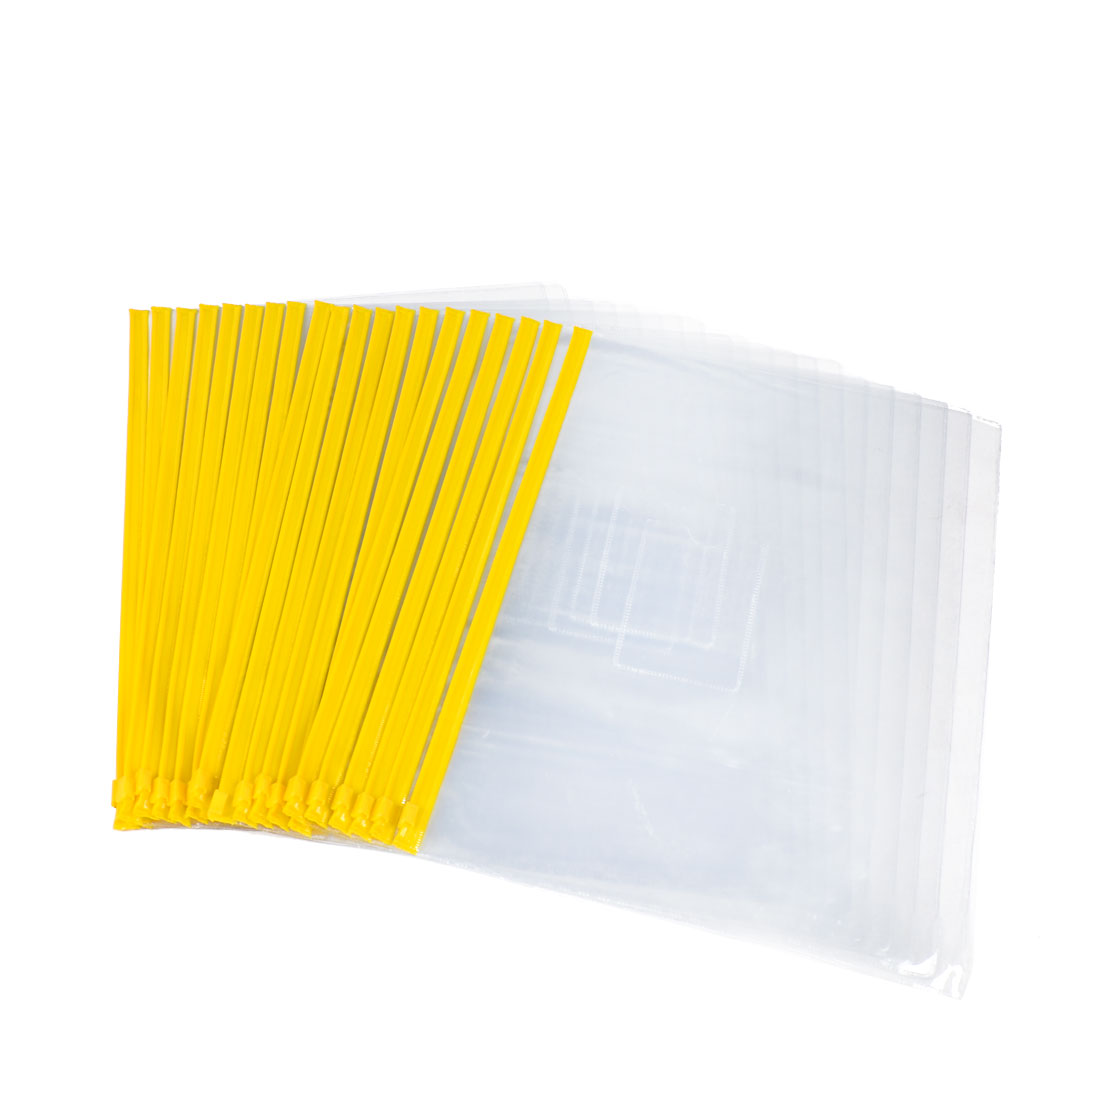 bdba1a6e5435 Unique Bargains a13020100ux0651 A4 Paper Size Yellow Silder Grip ...